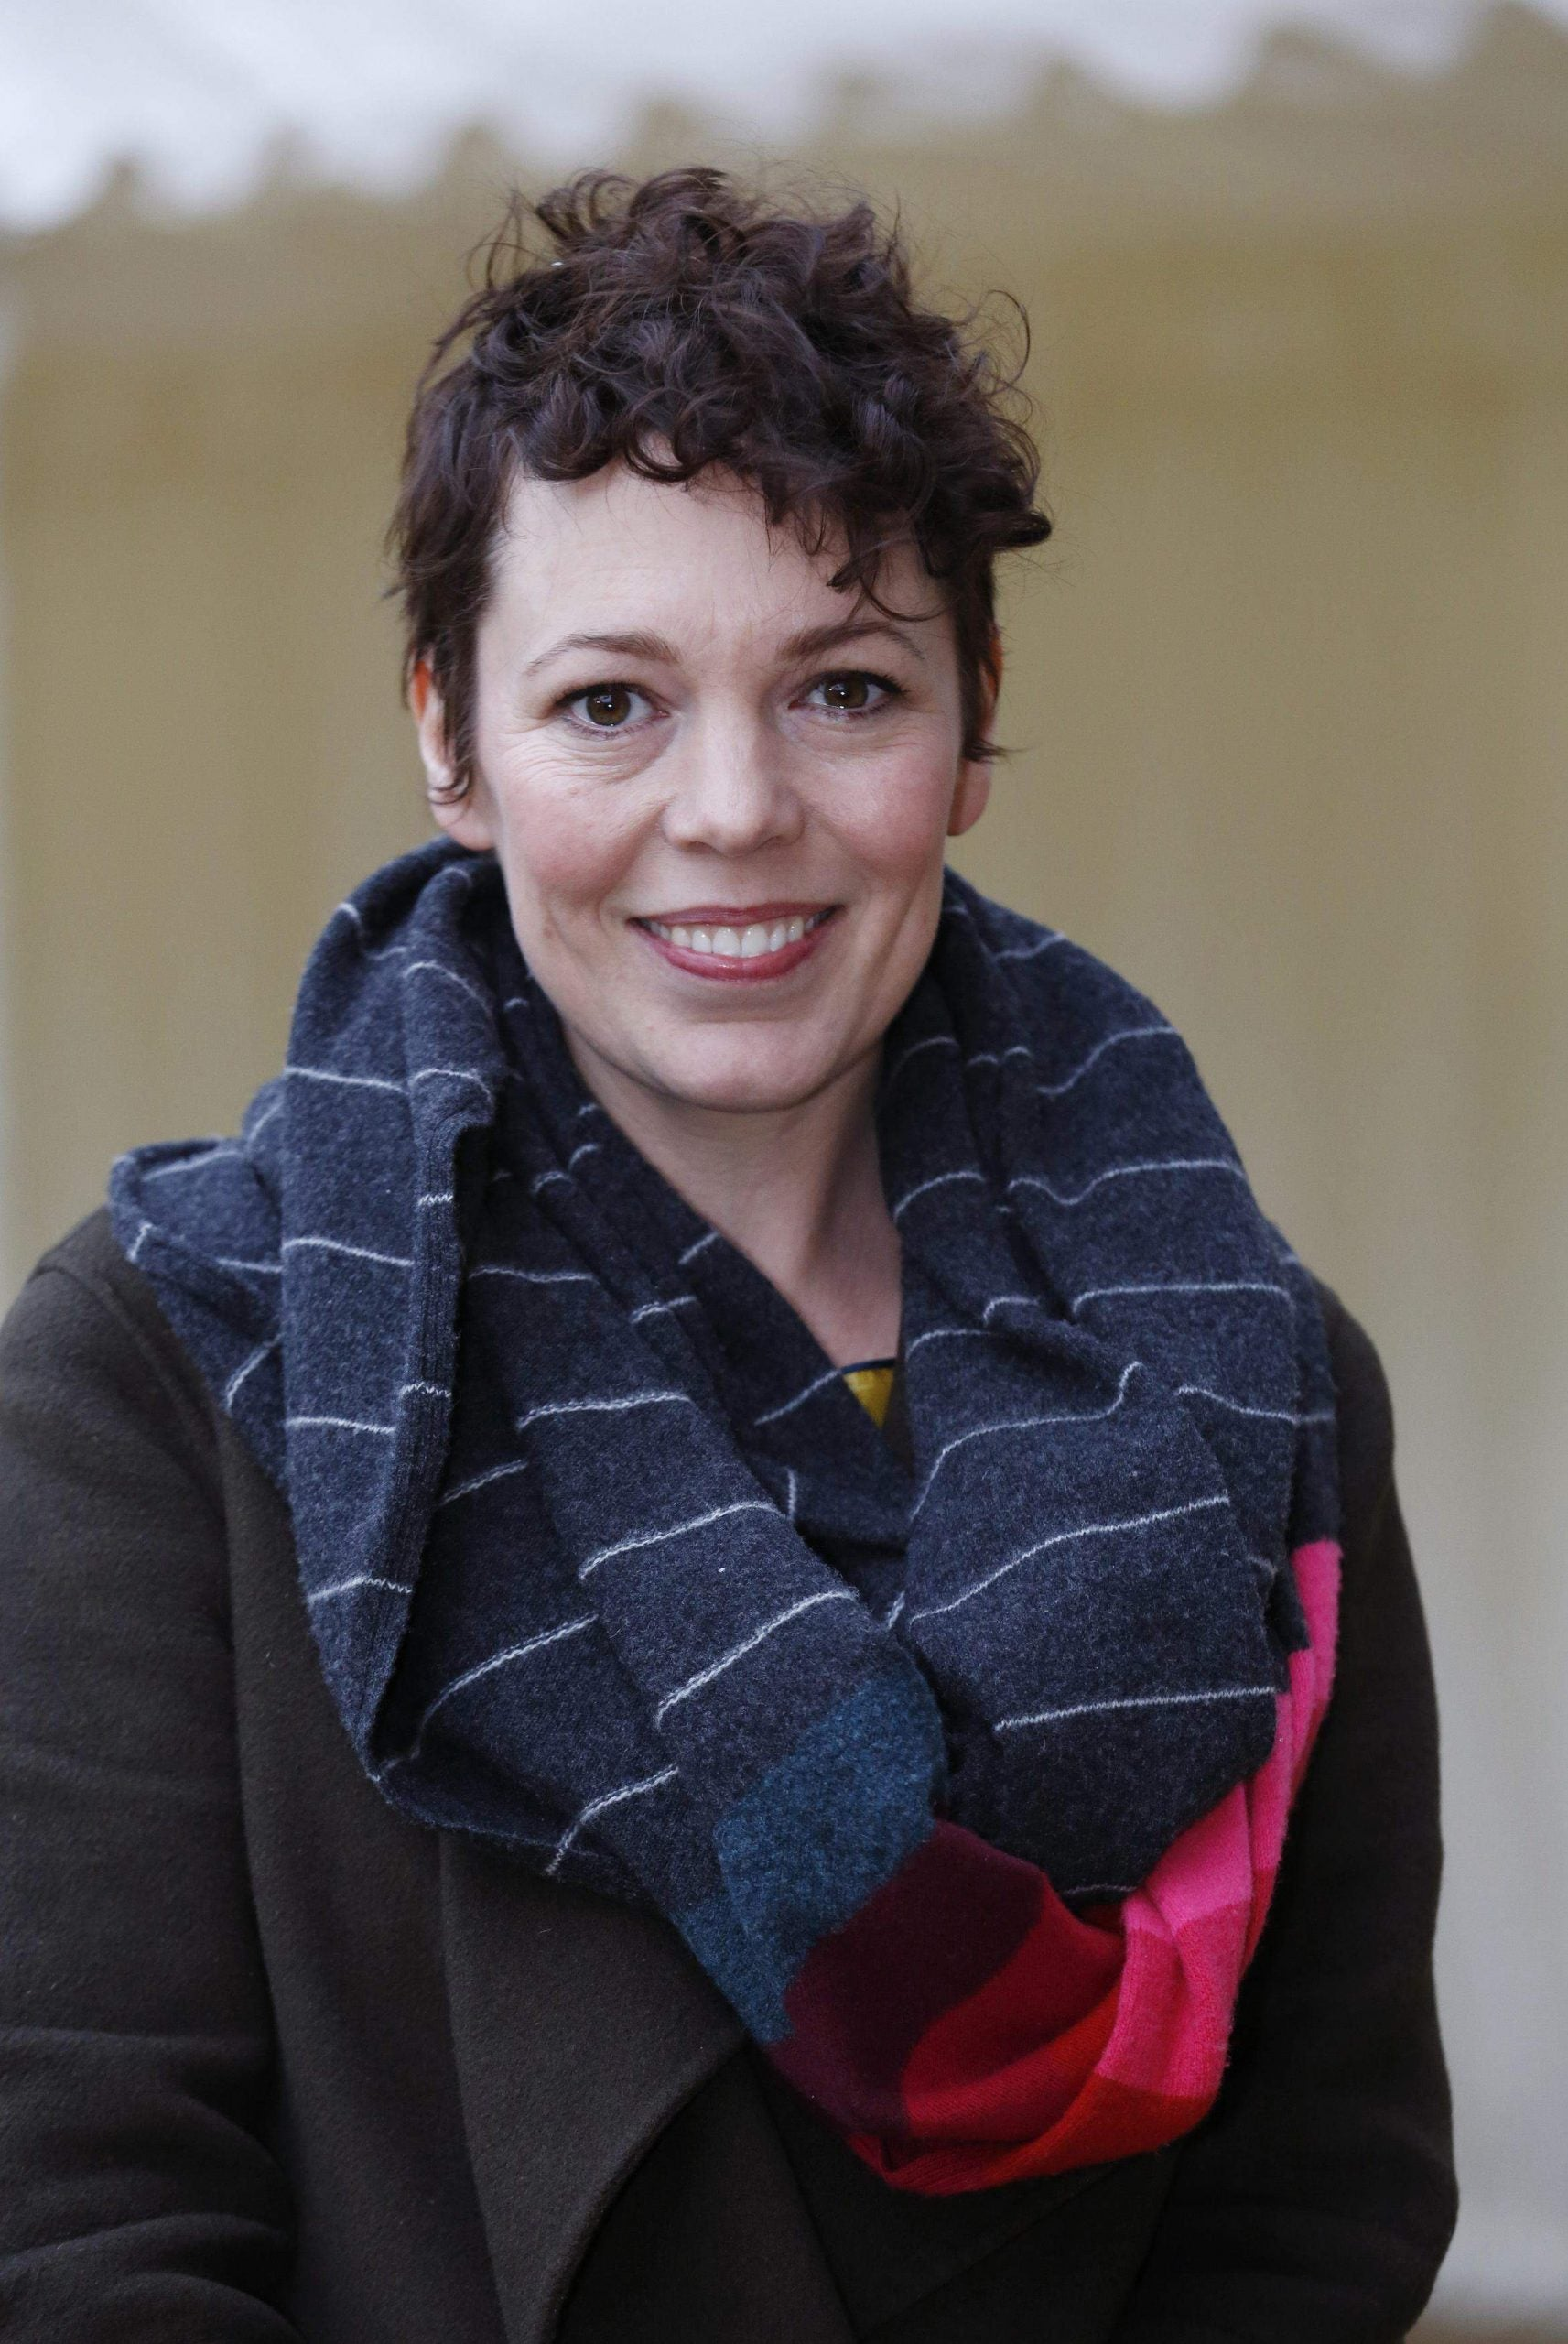 Olivia Colman is the most likely next Doctor Who – here's why